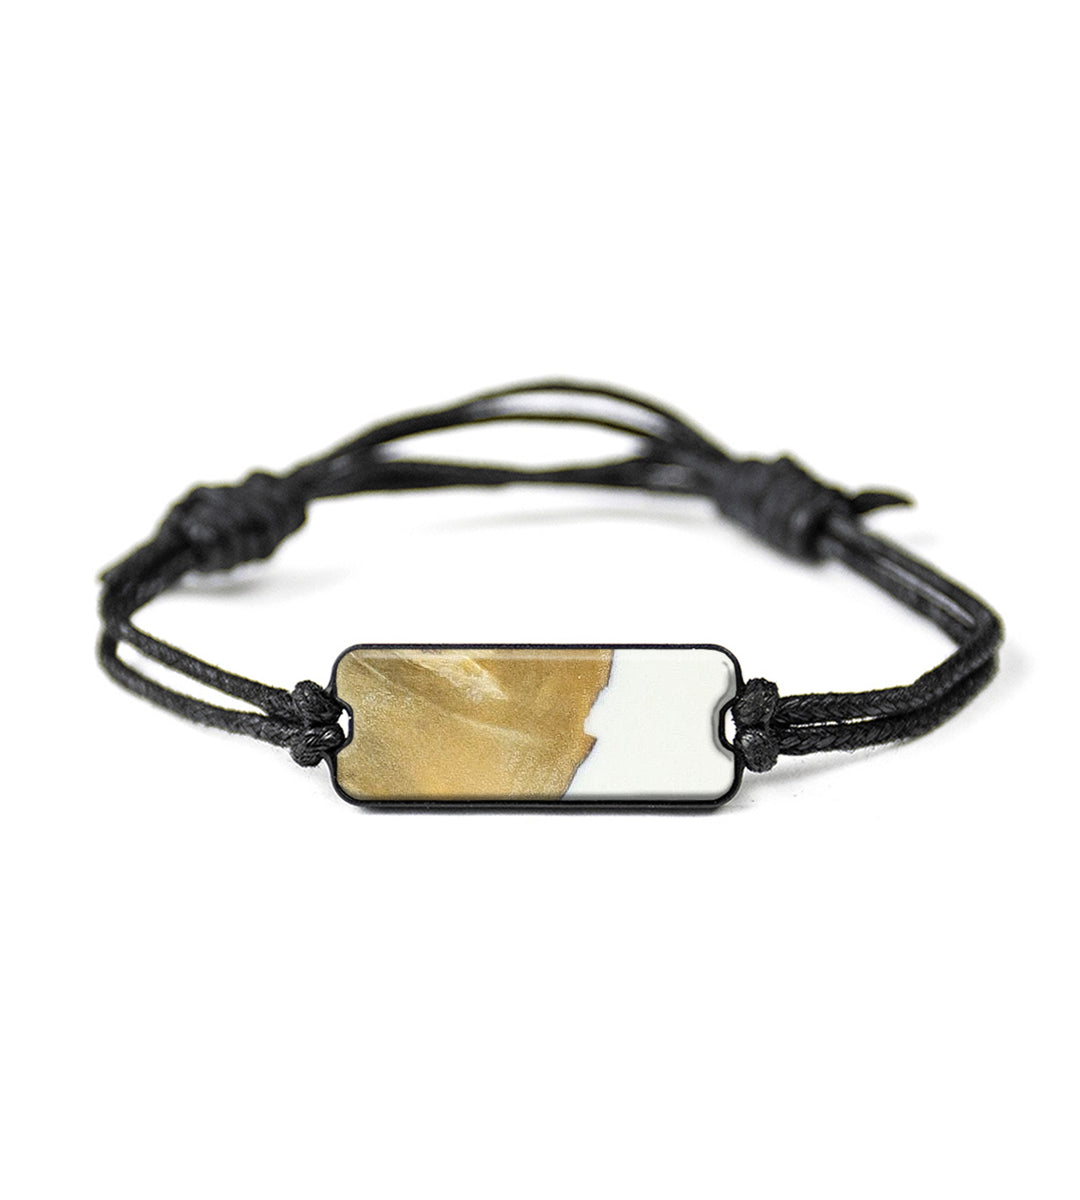 Classic Wood+Resin Bracelet - Cornelis (Black & White, 394163)